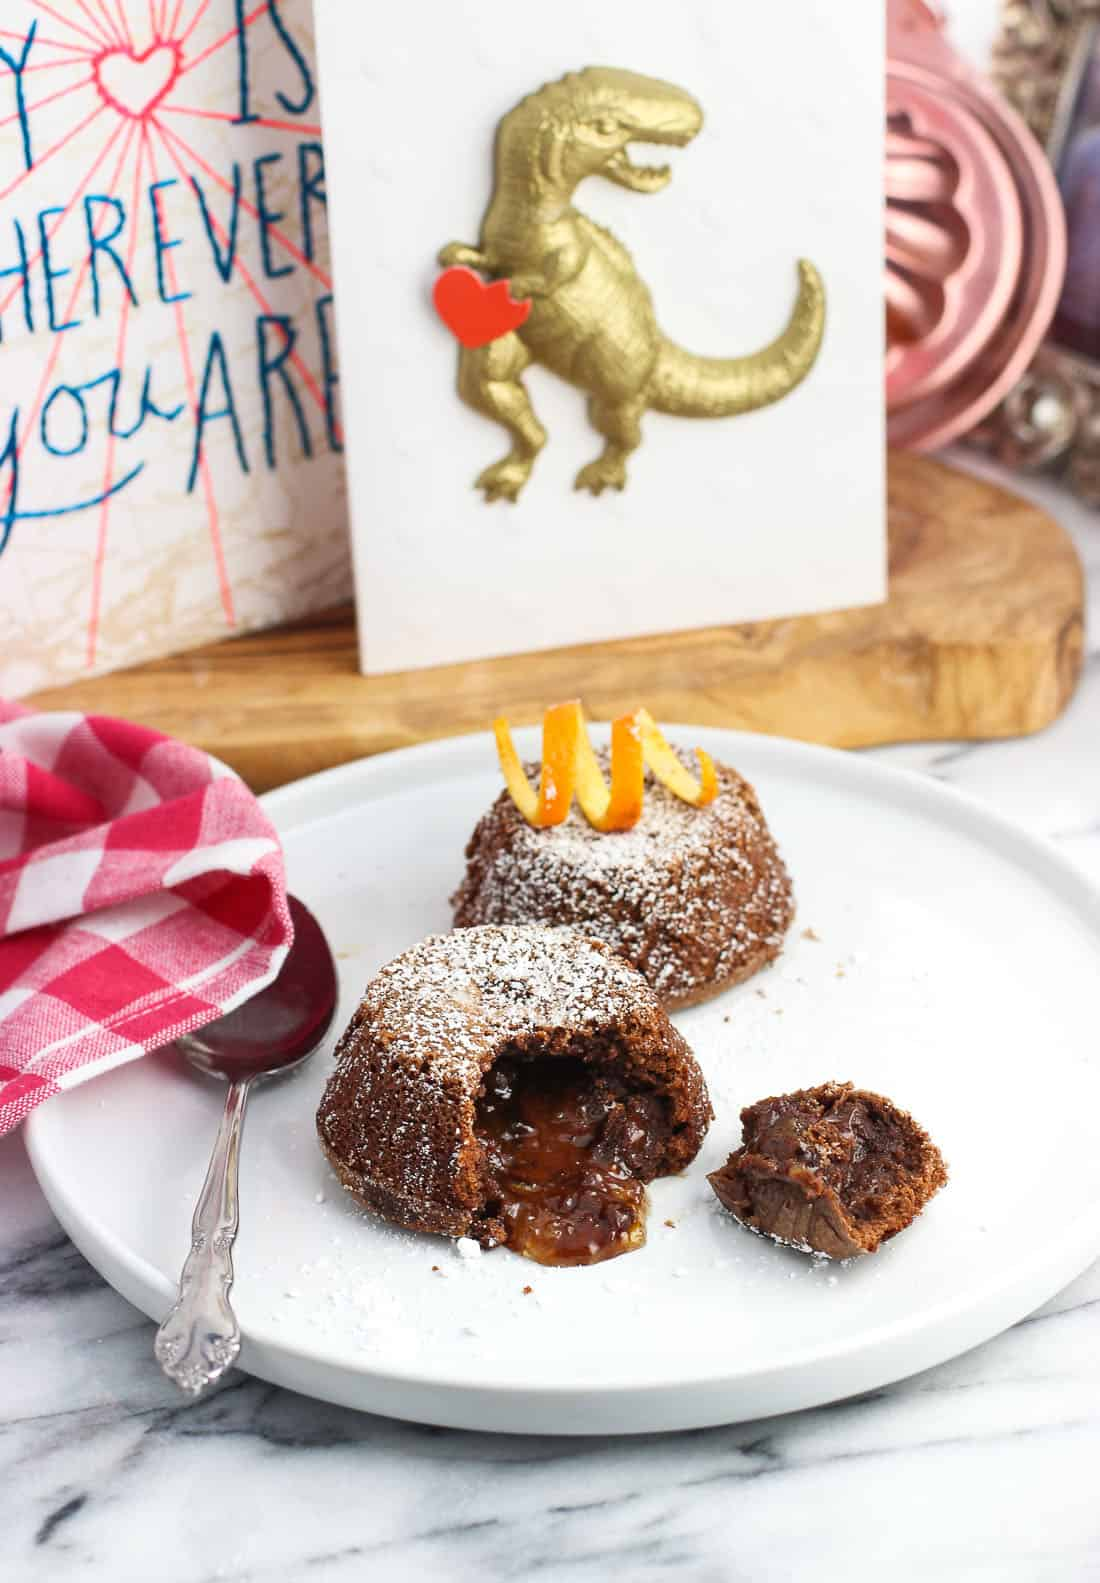 Two lava cakes on a dessert plate, one with a spoonful taken out of it to show the molten filling, with the other whole topped with an orange rind twist. Two Valentine's Day cards are displayed in the background